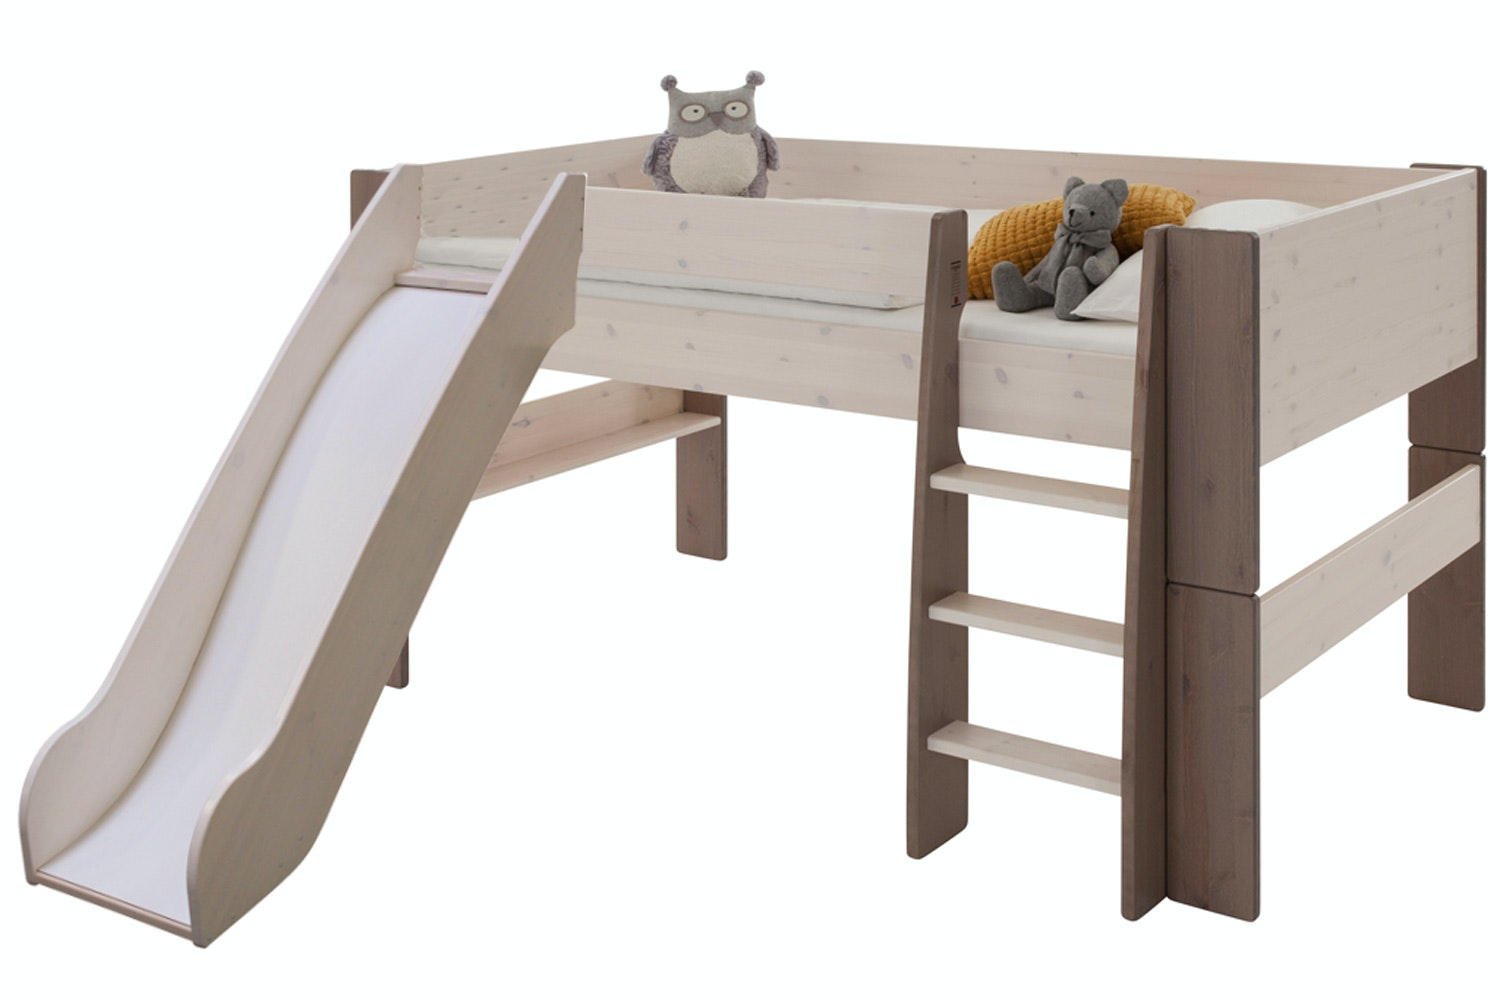 Midsleeper Bed Frame White Wash & Stone with Slide